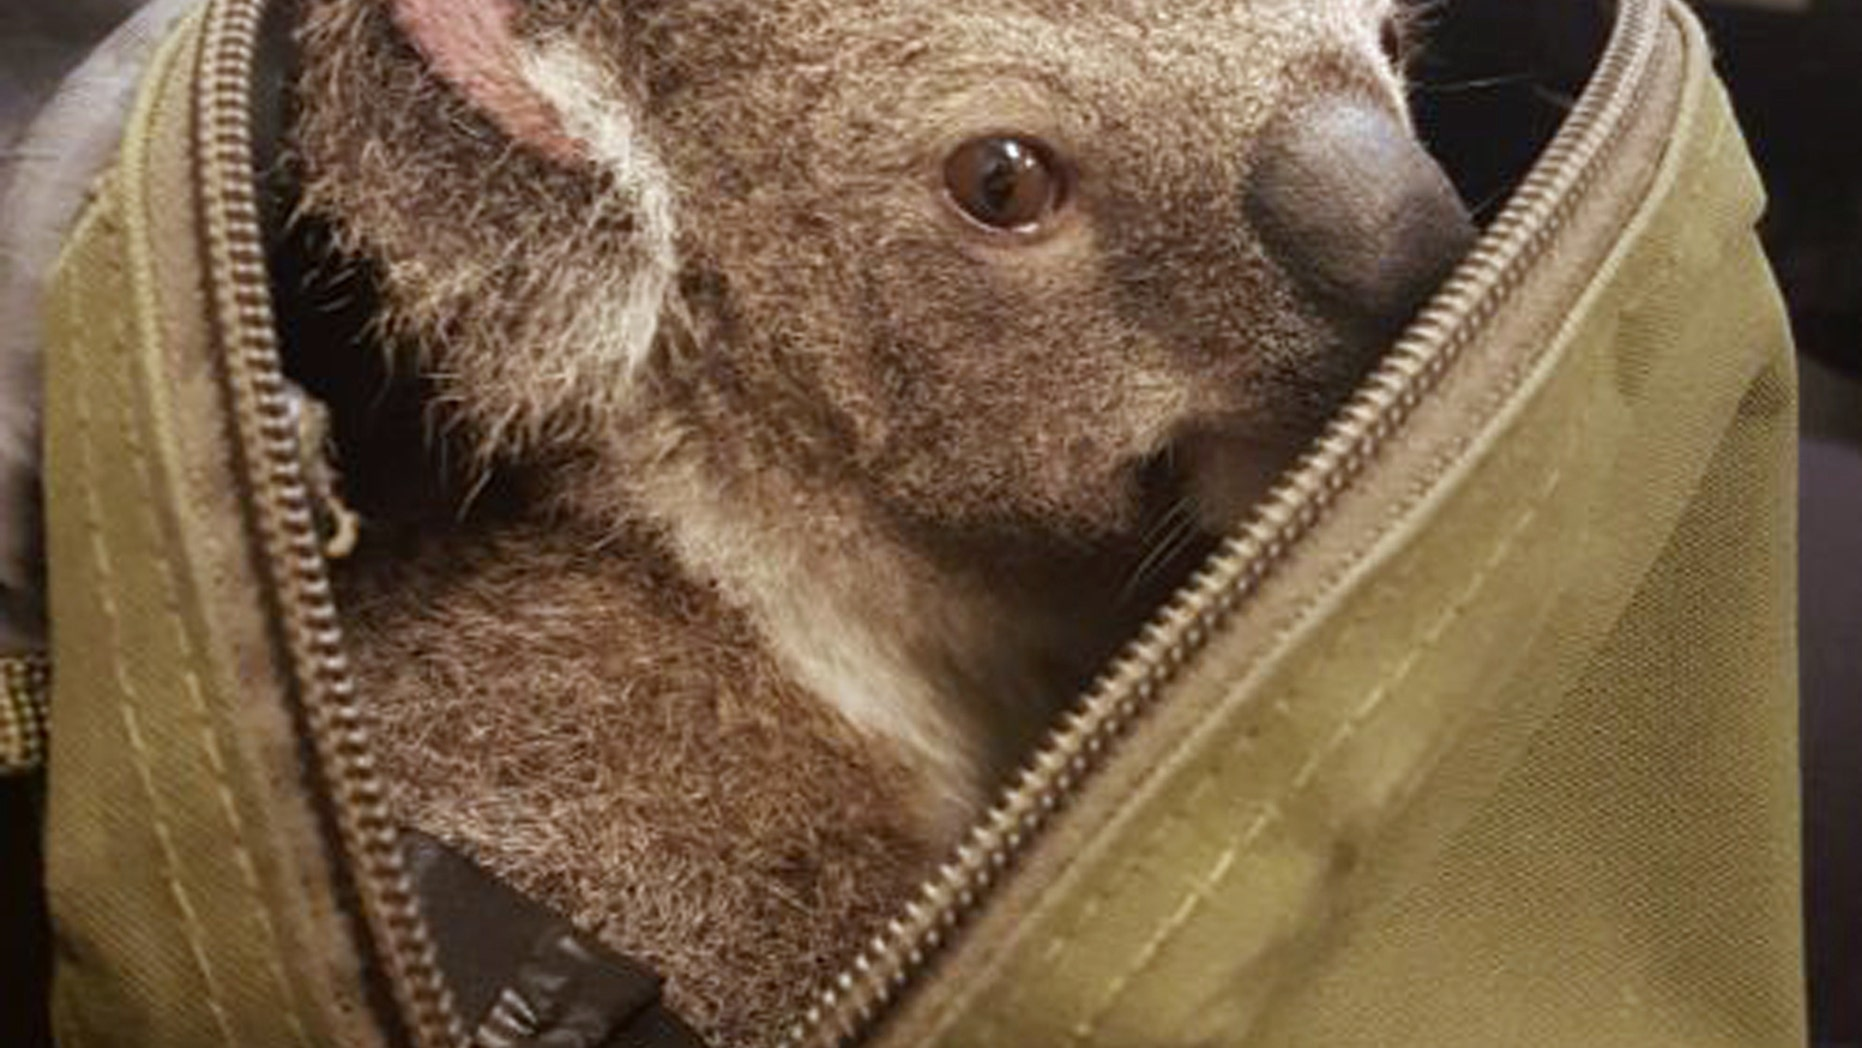 In this photo provided on Nov. 7, 2016, by the Queensland Police, a koala peeks out form the top of a bag at the Upper Mount Gravatt Police station in Brisbane, Australia, after it was found in the bag carried by a woman who was being arrested. Police said that when they asked the 50-year-old woman if she had anything to declare Sunday night, Nov. 6, 2016, she handed over a zipped canvas bag that she said contained a baby koala. (Queensland Police via AP)